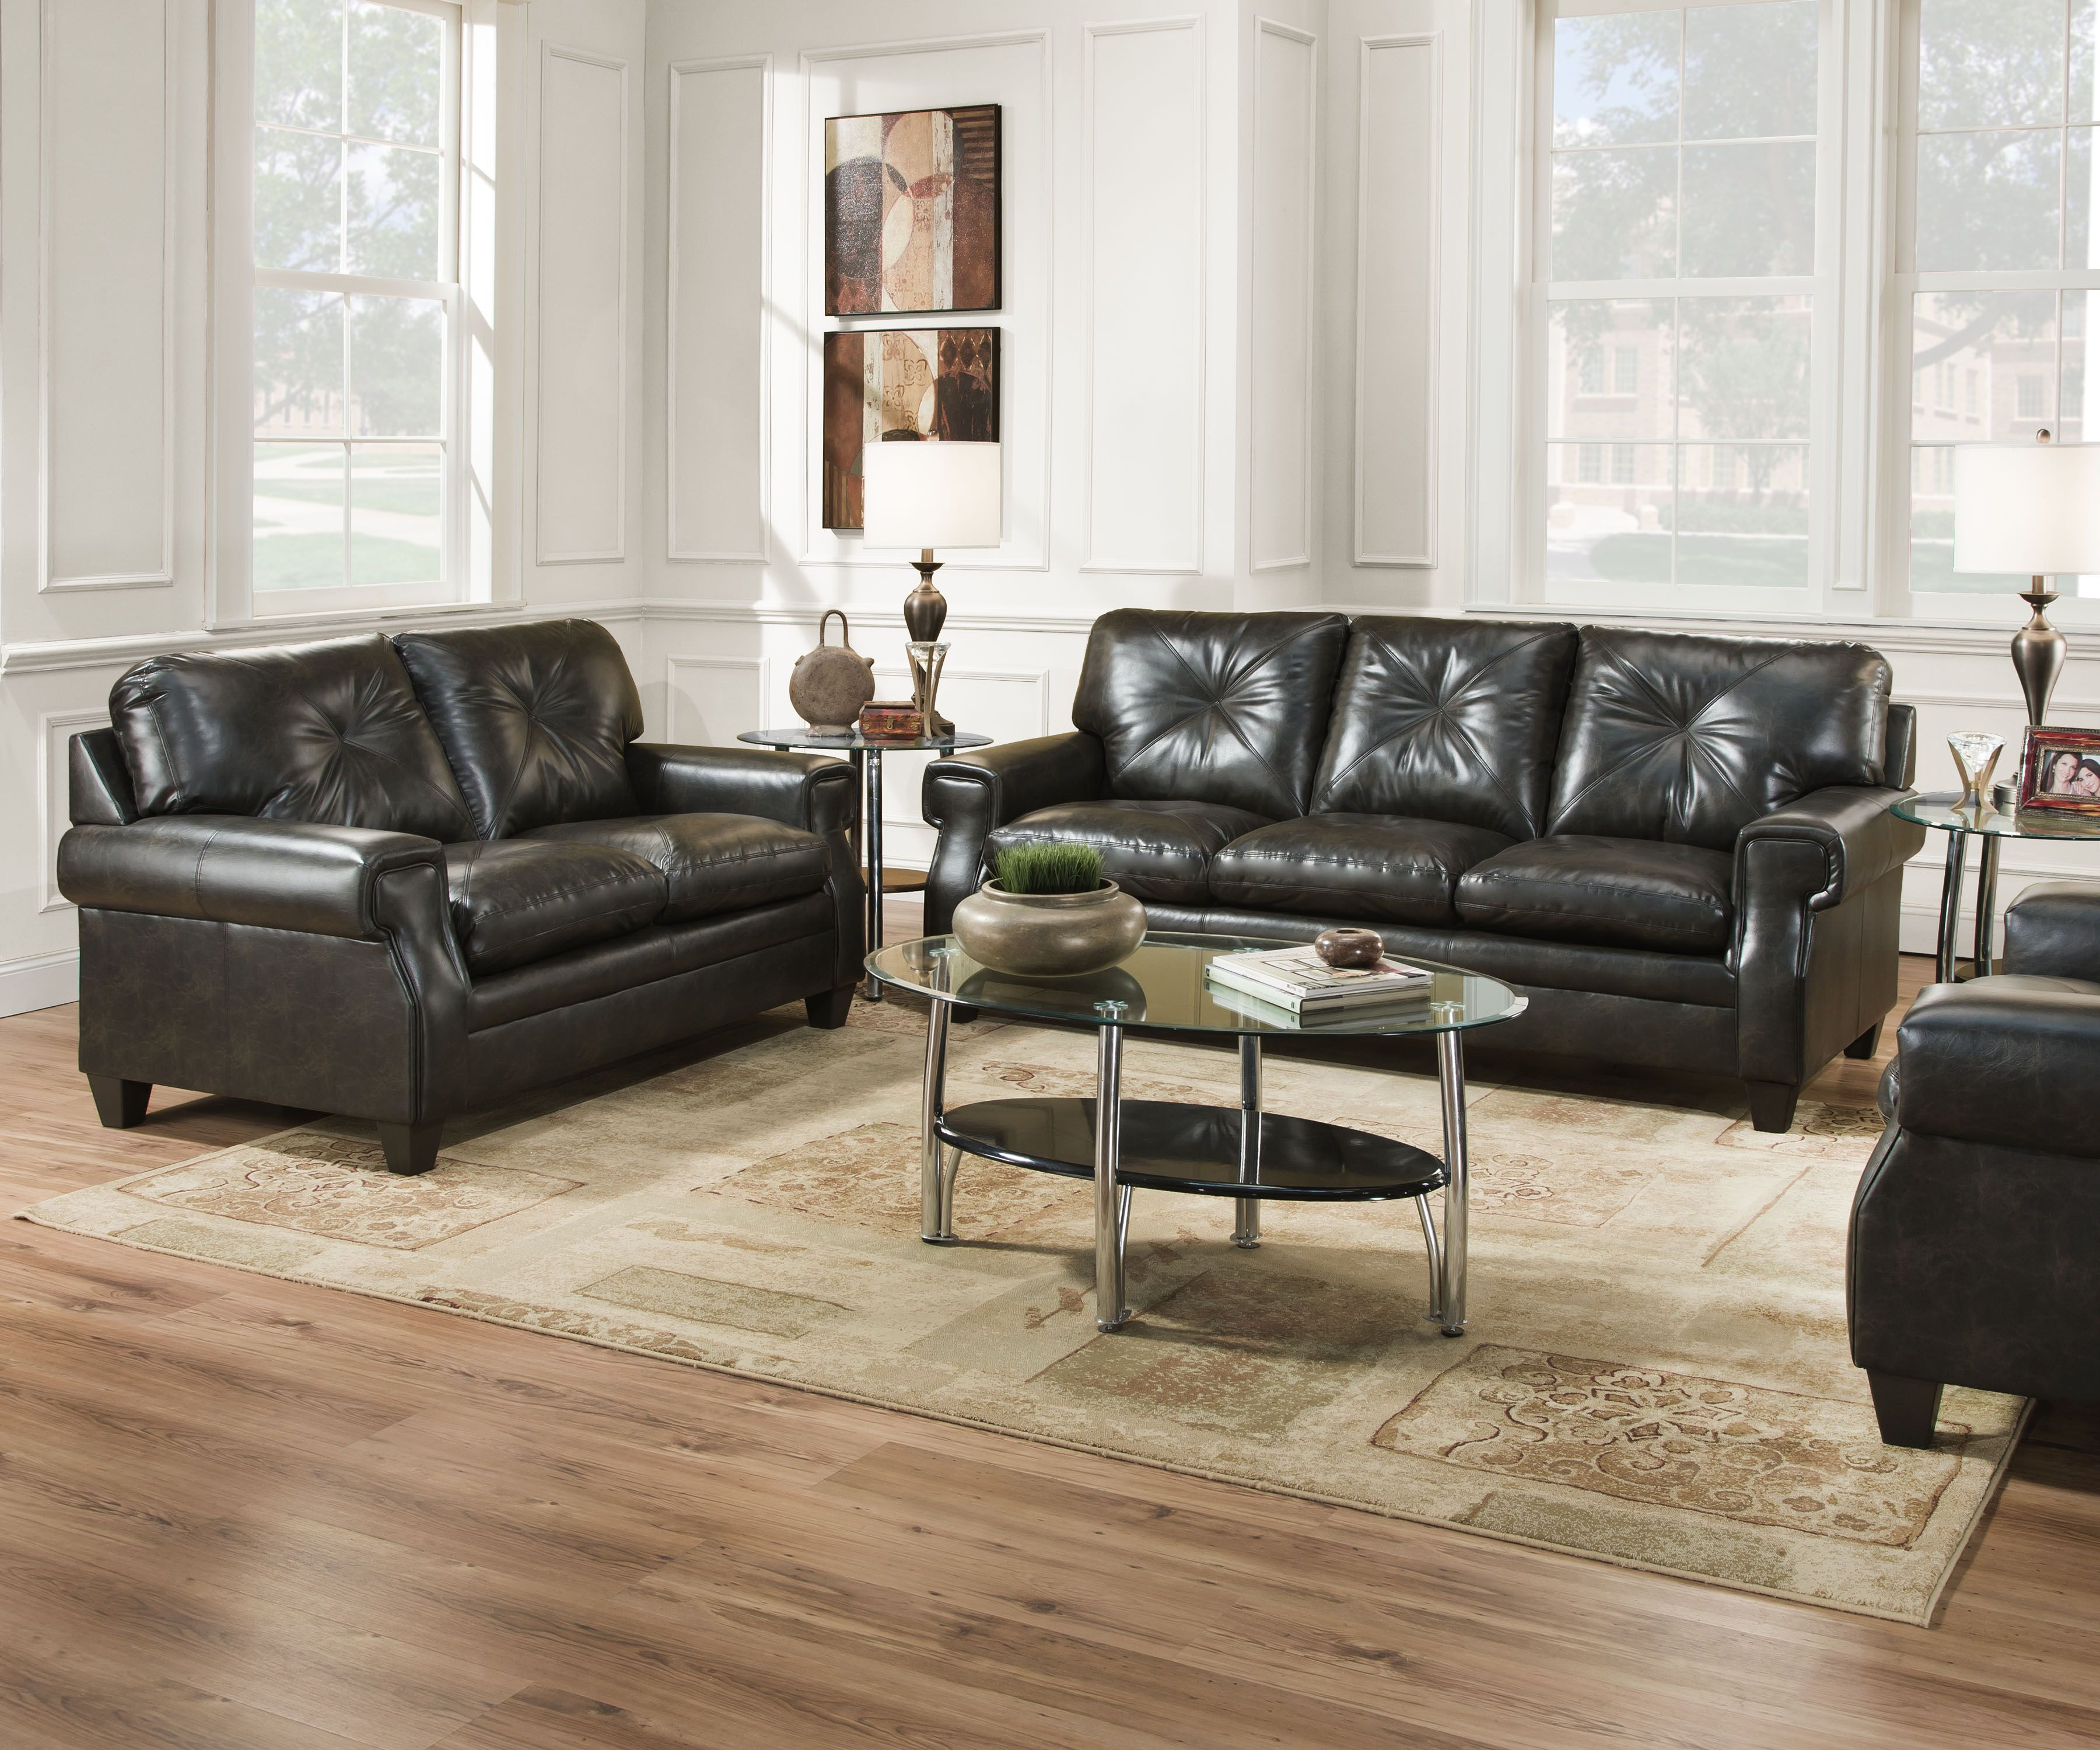 Famsa Living Room Sets Red Sectional Set Home Depot Mobel Lucky Marble Sofa And Love Seat Quality Bonded Leathersimmons